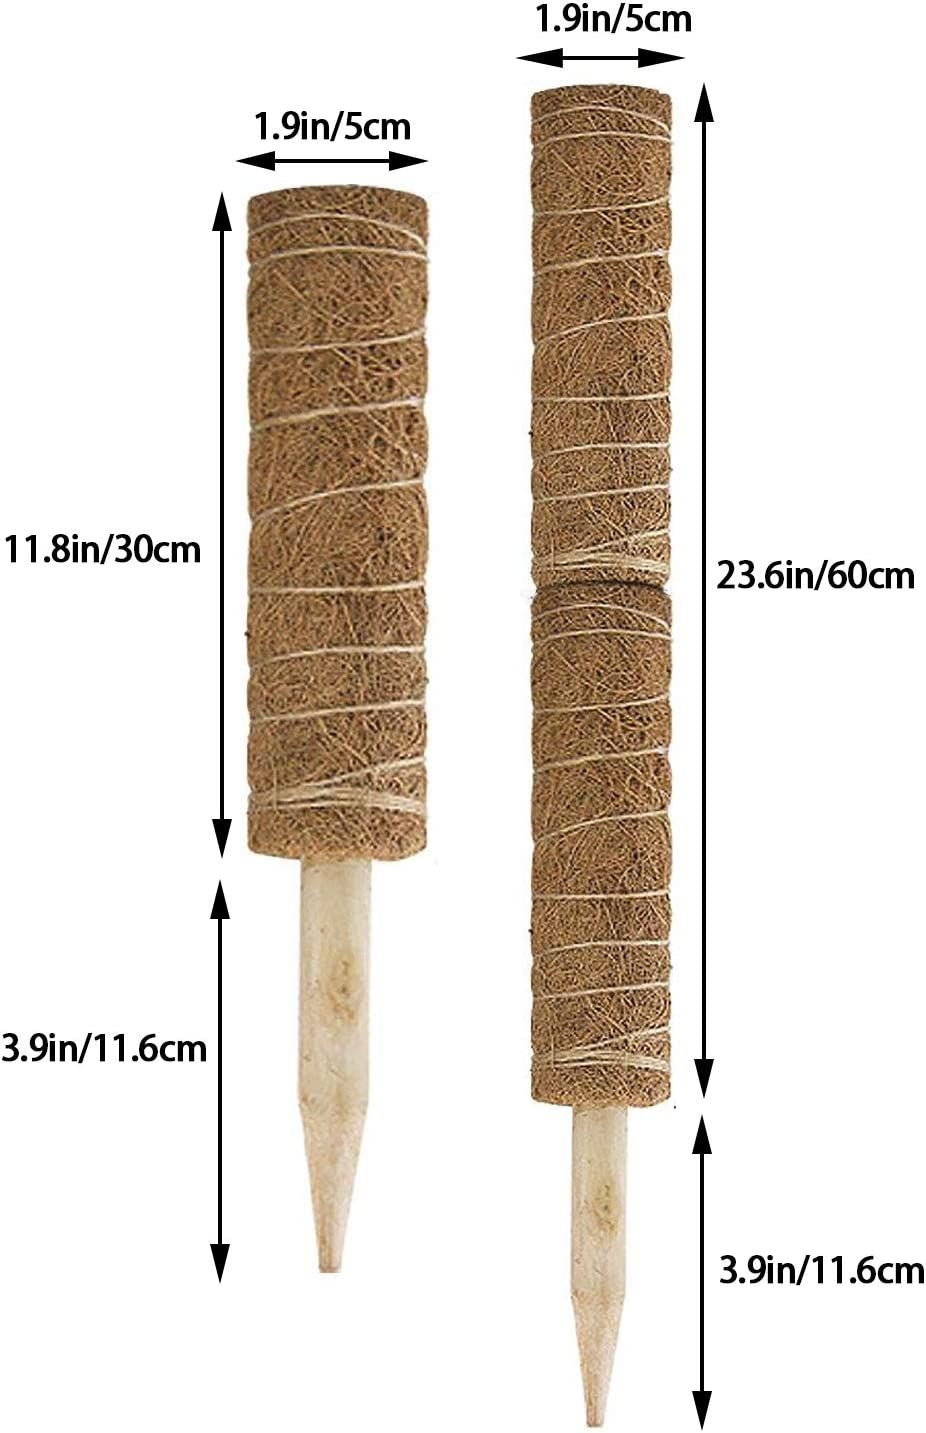 Coir Moss Totem Pole Coir Moss Stick for Plant Support Extension 4 Pieces 15.7 Inch Coir Totem Pole with 40 Pcs Plant Labels Creepers Climbing Indoor Plants